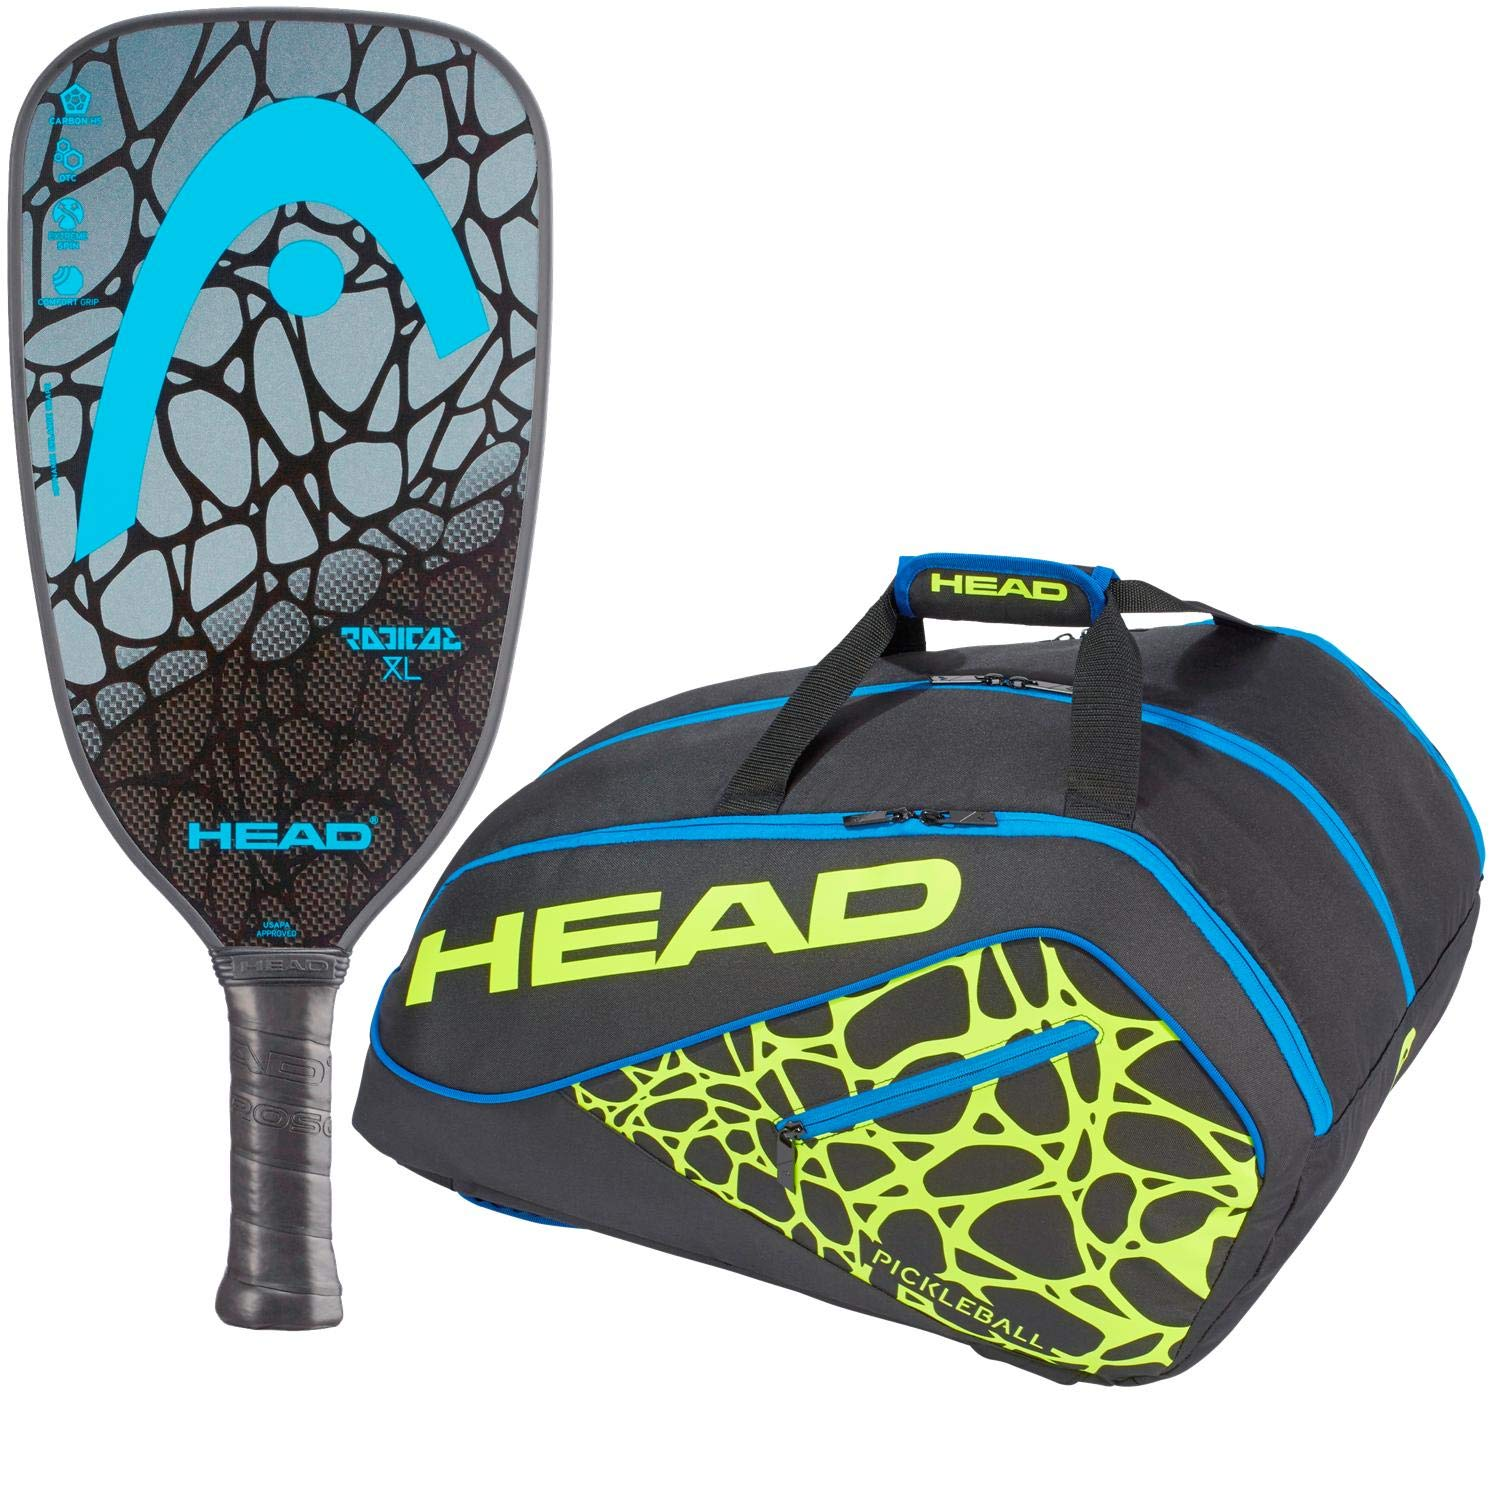 Amazon.com : Head Radical XL Graphite Pickleball Paddle Set ...